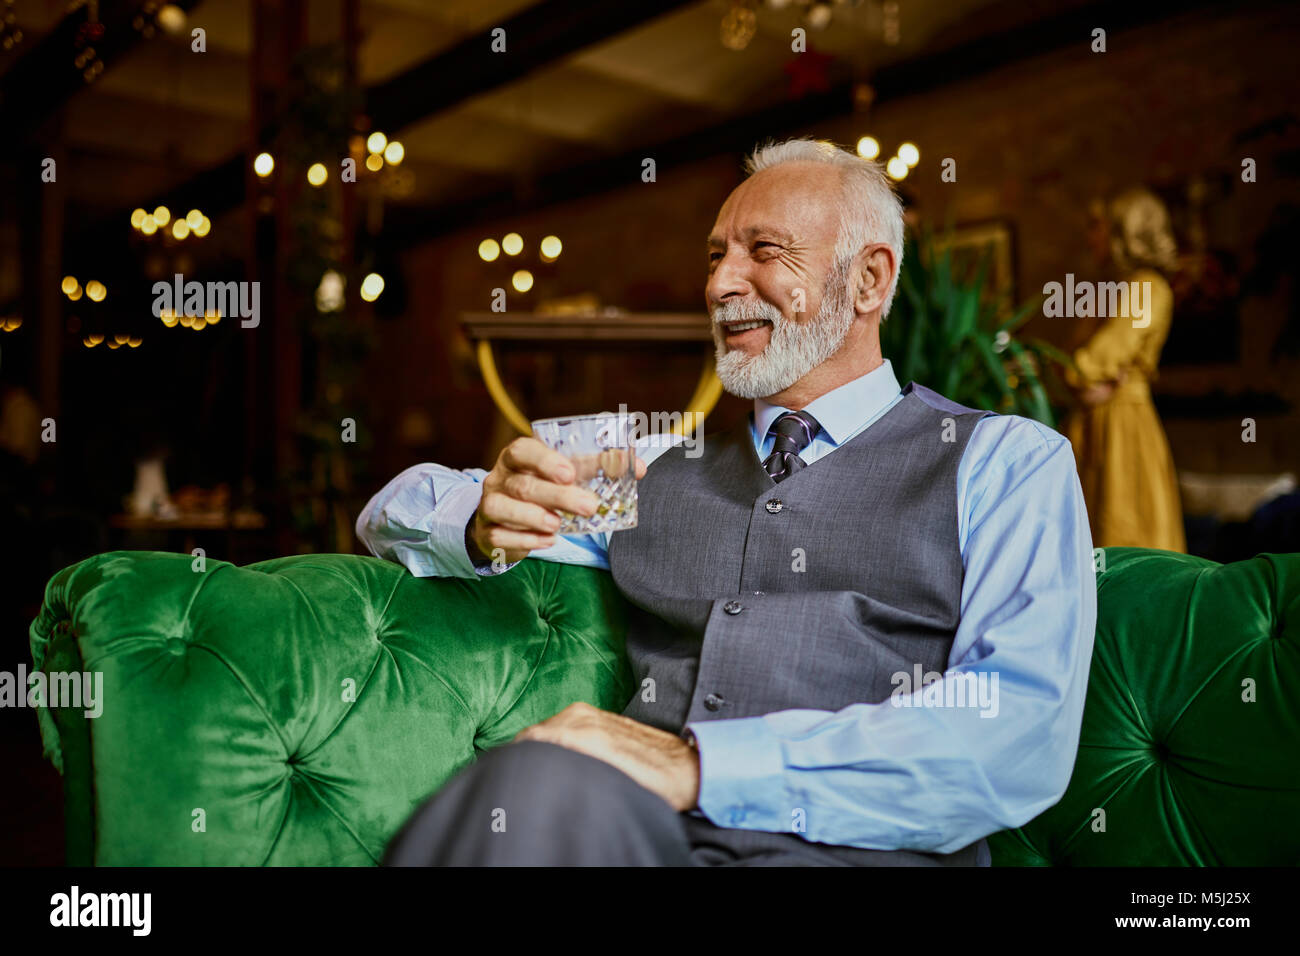 Portrait of elegant senior man sitting on couch in a bar holding tumbler - Stock Image